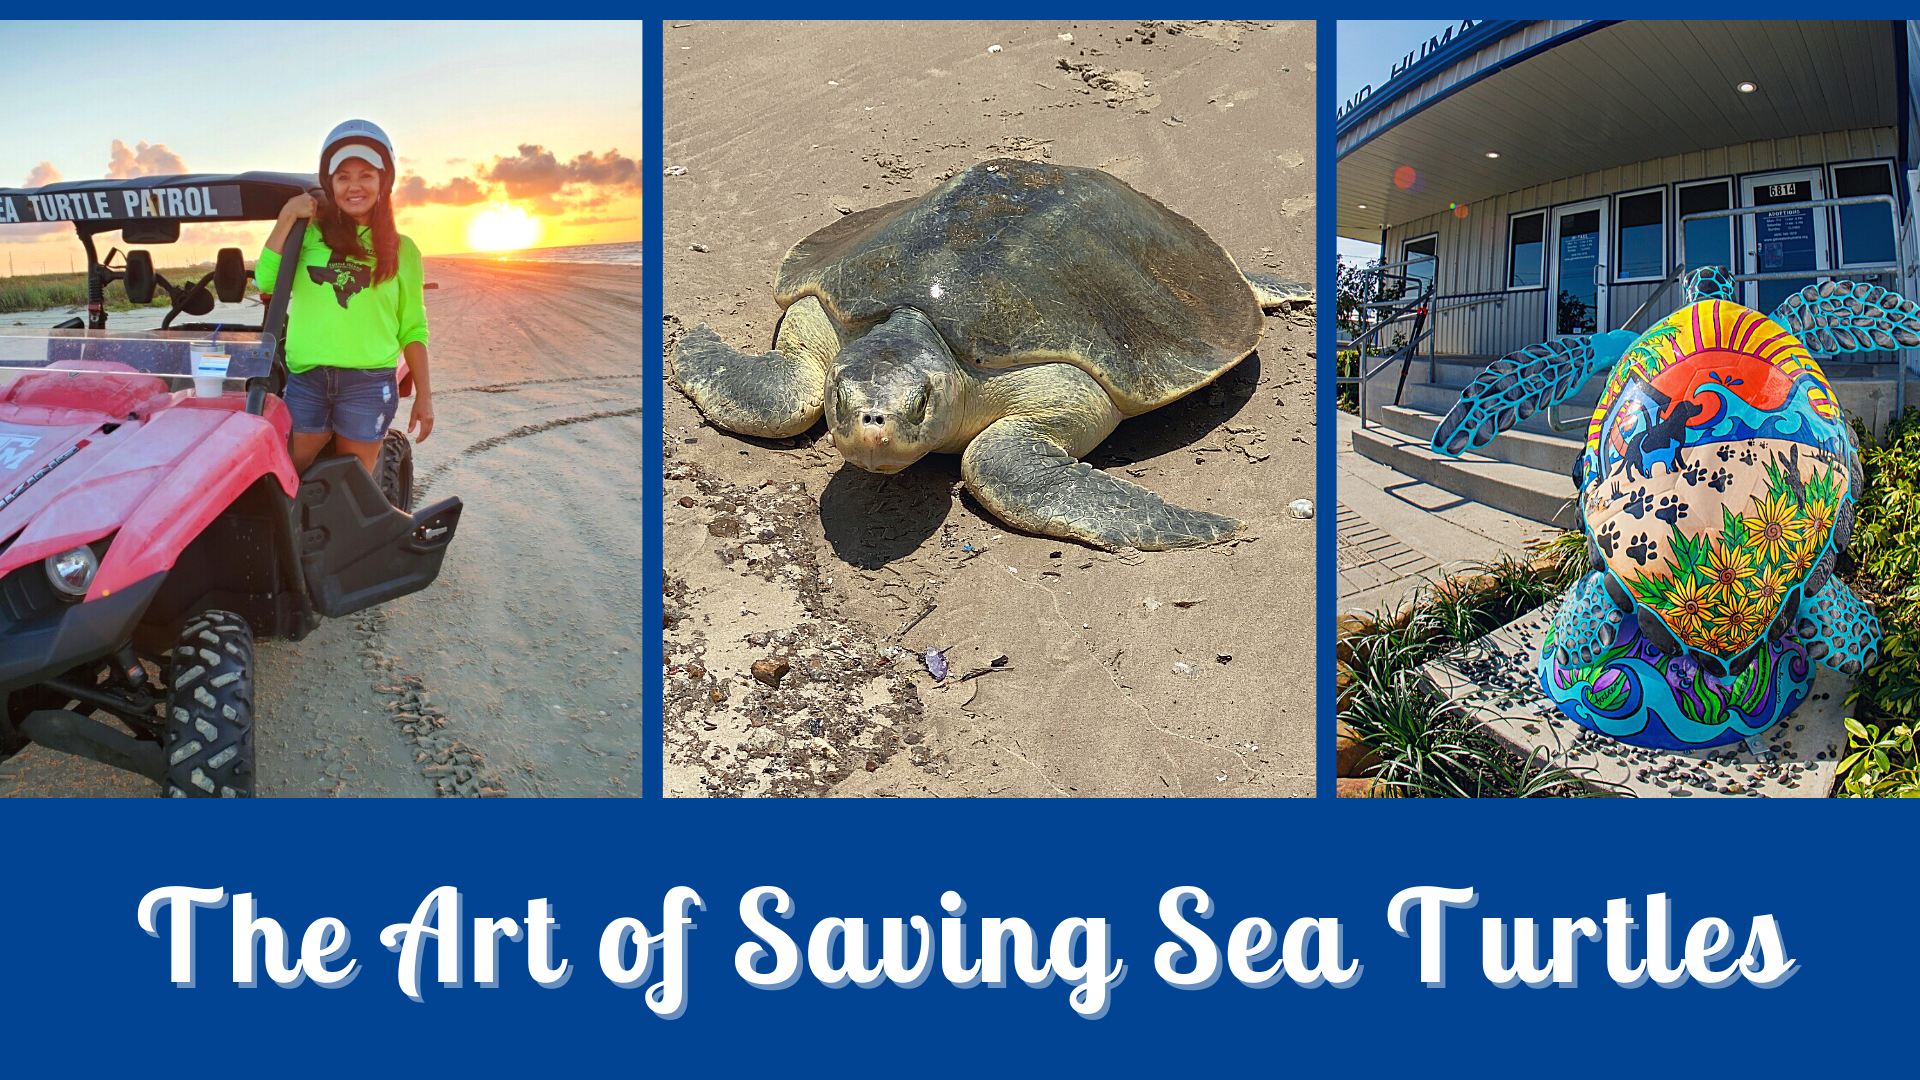 Third Annual 'Art of Saving Sea Turtles' Gala and Fundraiser to be Held Online